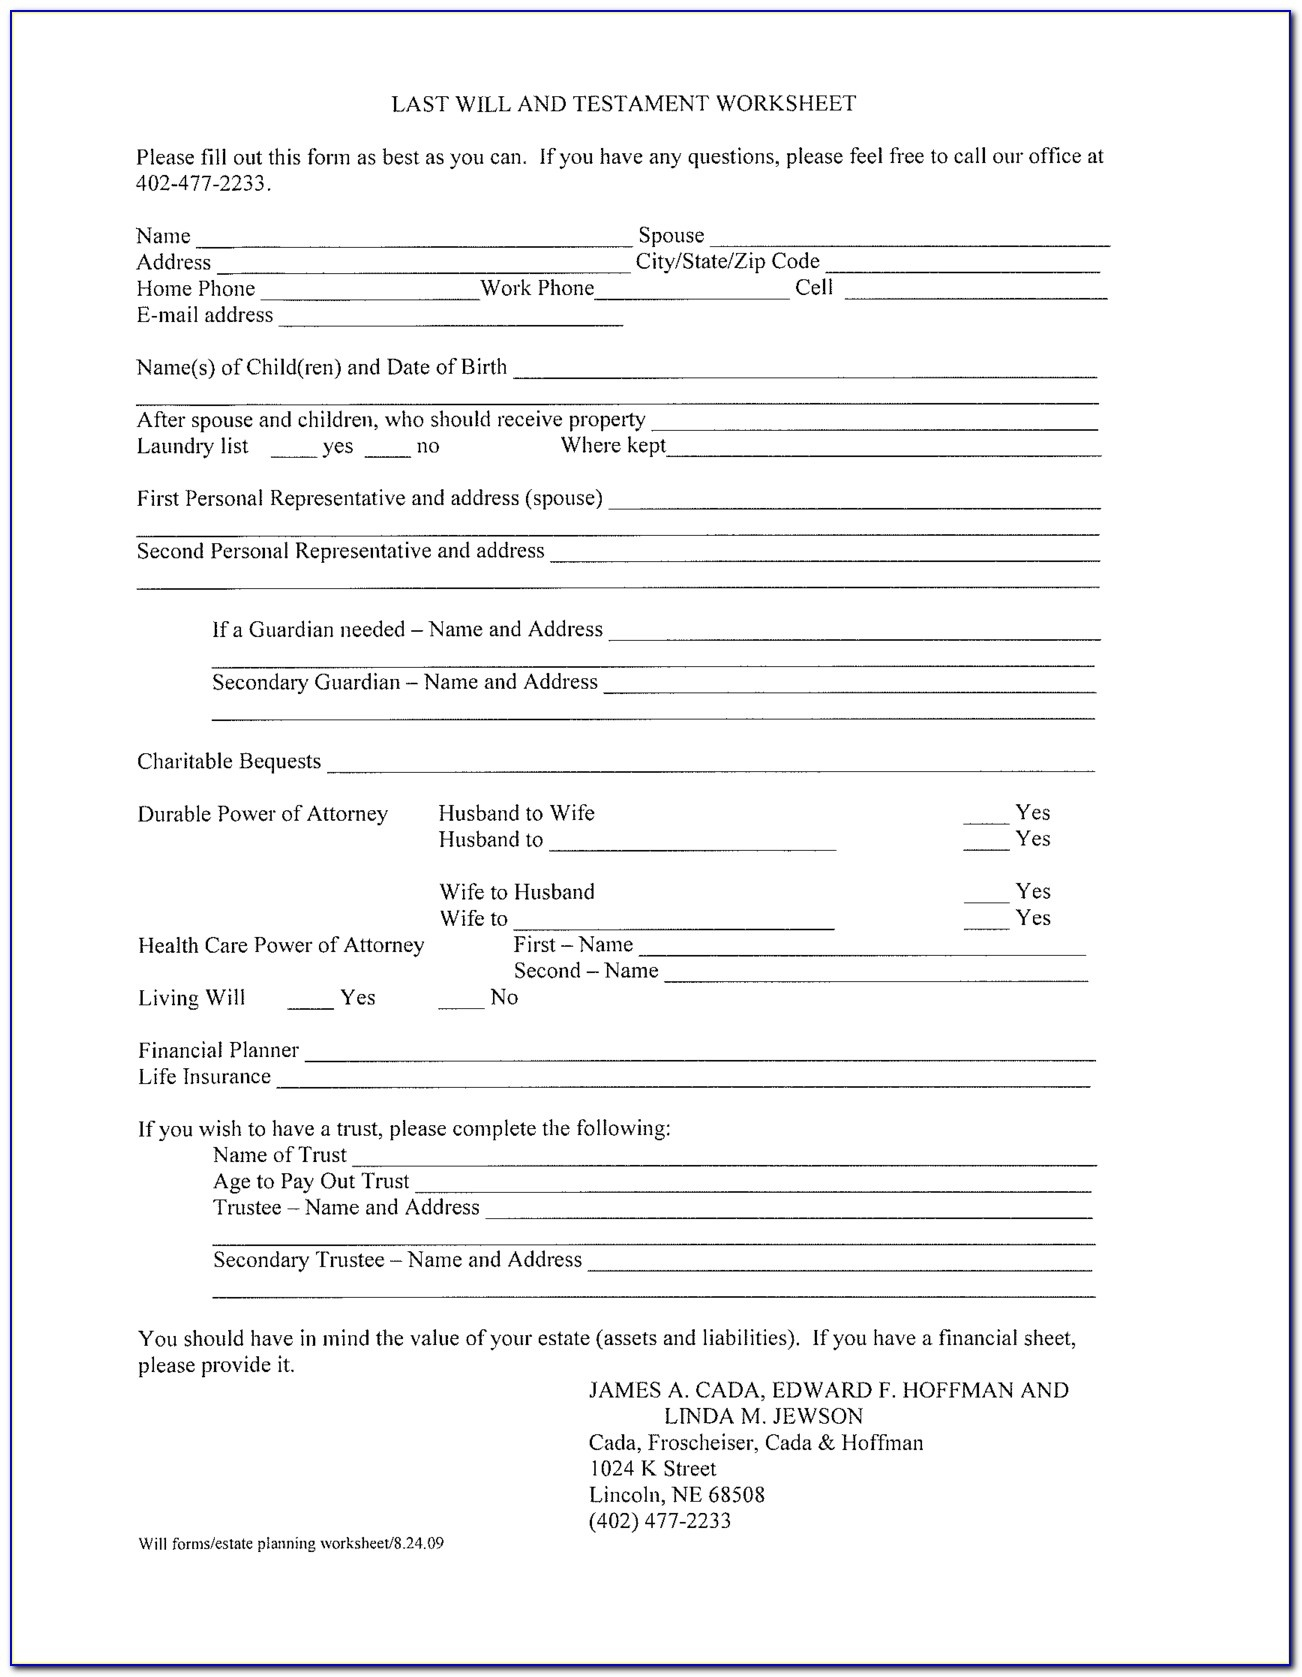 Free Printable Last Will And Testament Forms California - Form - Free Printable Legal Forms California